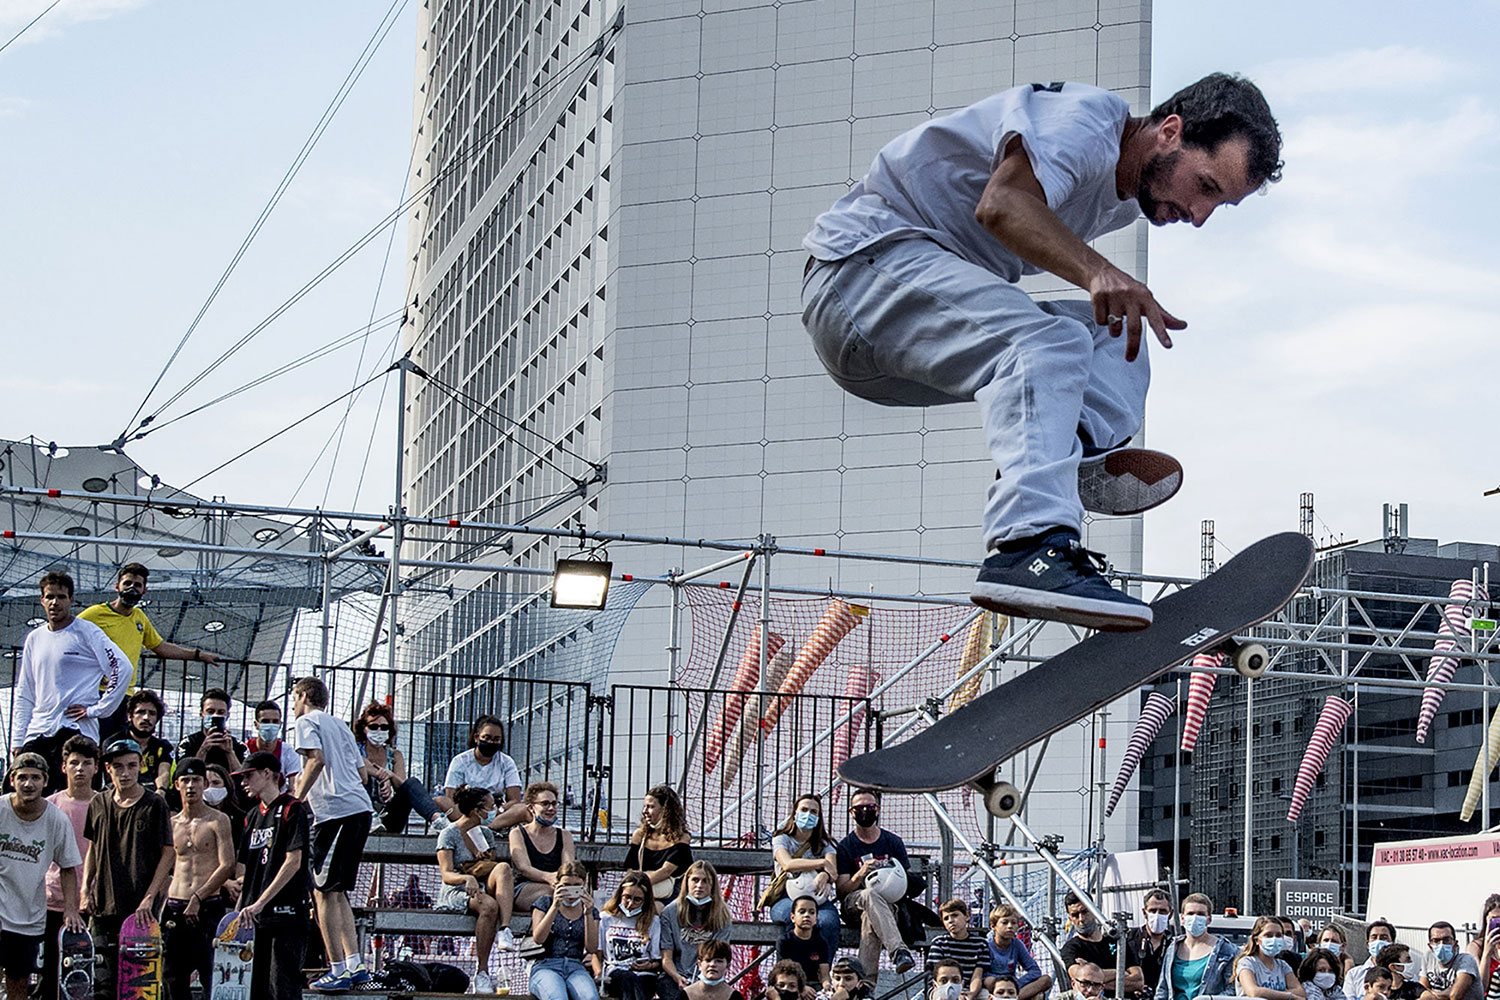 Urban Week Festival Paris La Defense, basketball, September 19, 2020, France, (Nos Dren).